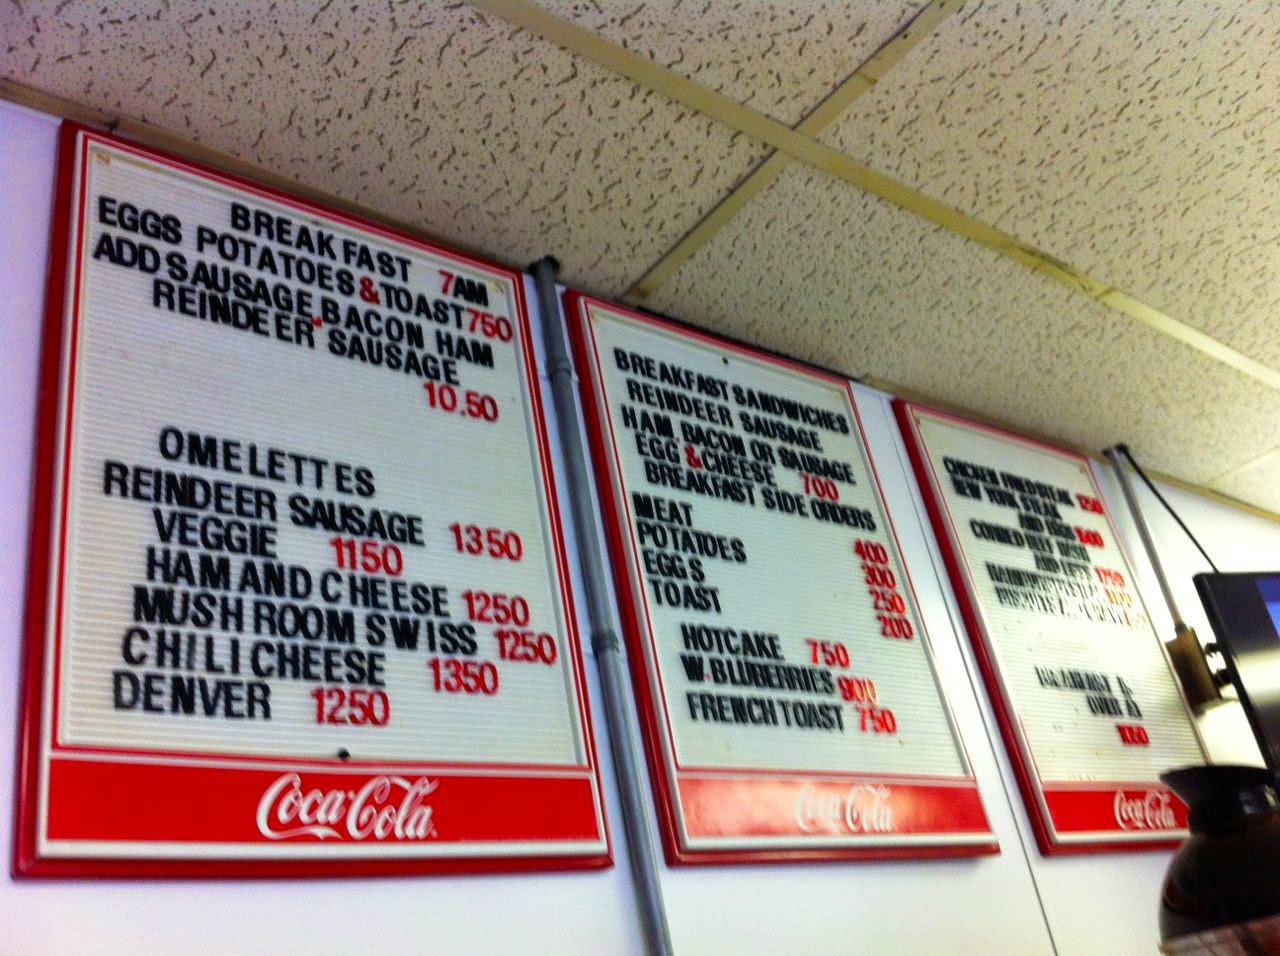 White Spot cafe menu, in Anchorage, Alaska